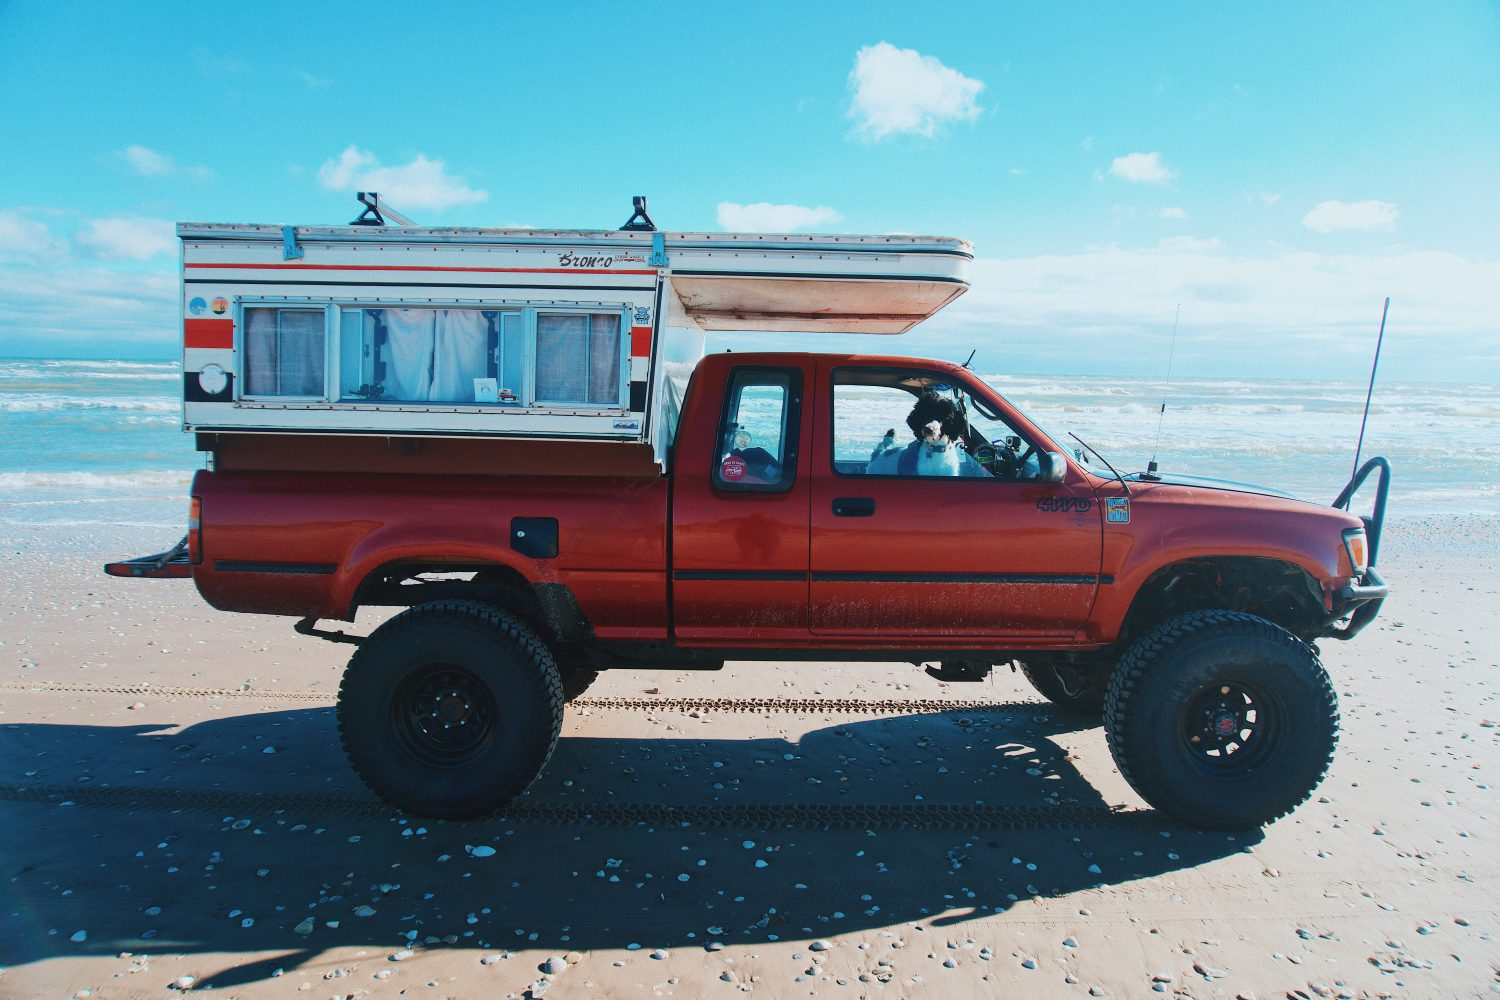 Featured Vehicle: Overland Nomad's Toyota Pickup Camper